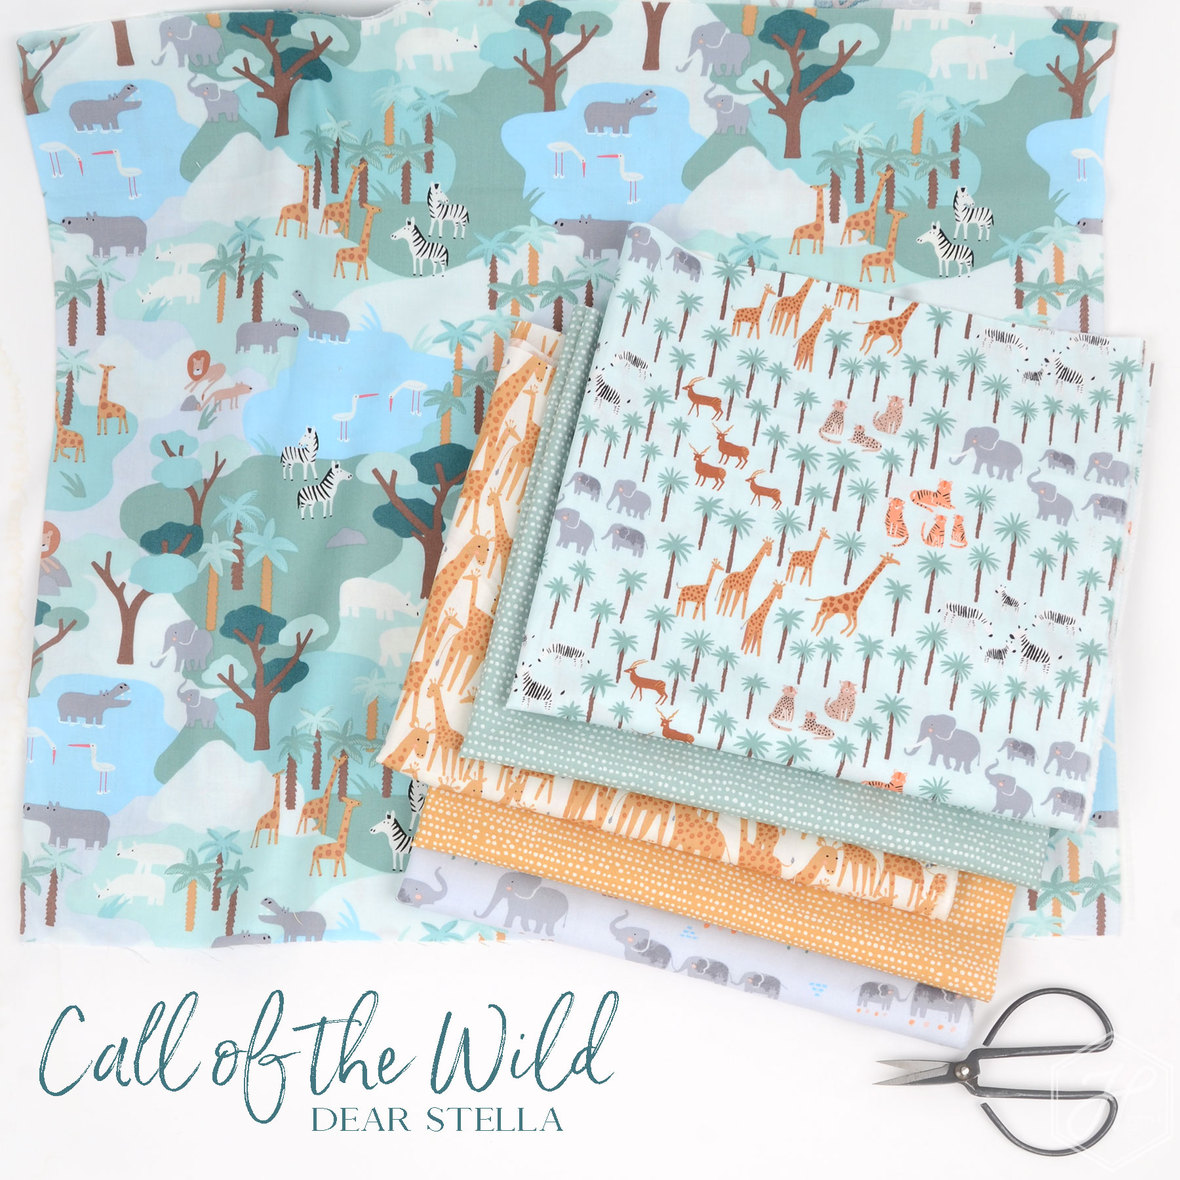 Call-of-the-Wild-Fabric-Poster-Dear-Stella-at-Hawthorne-Supply-Co